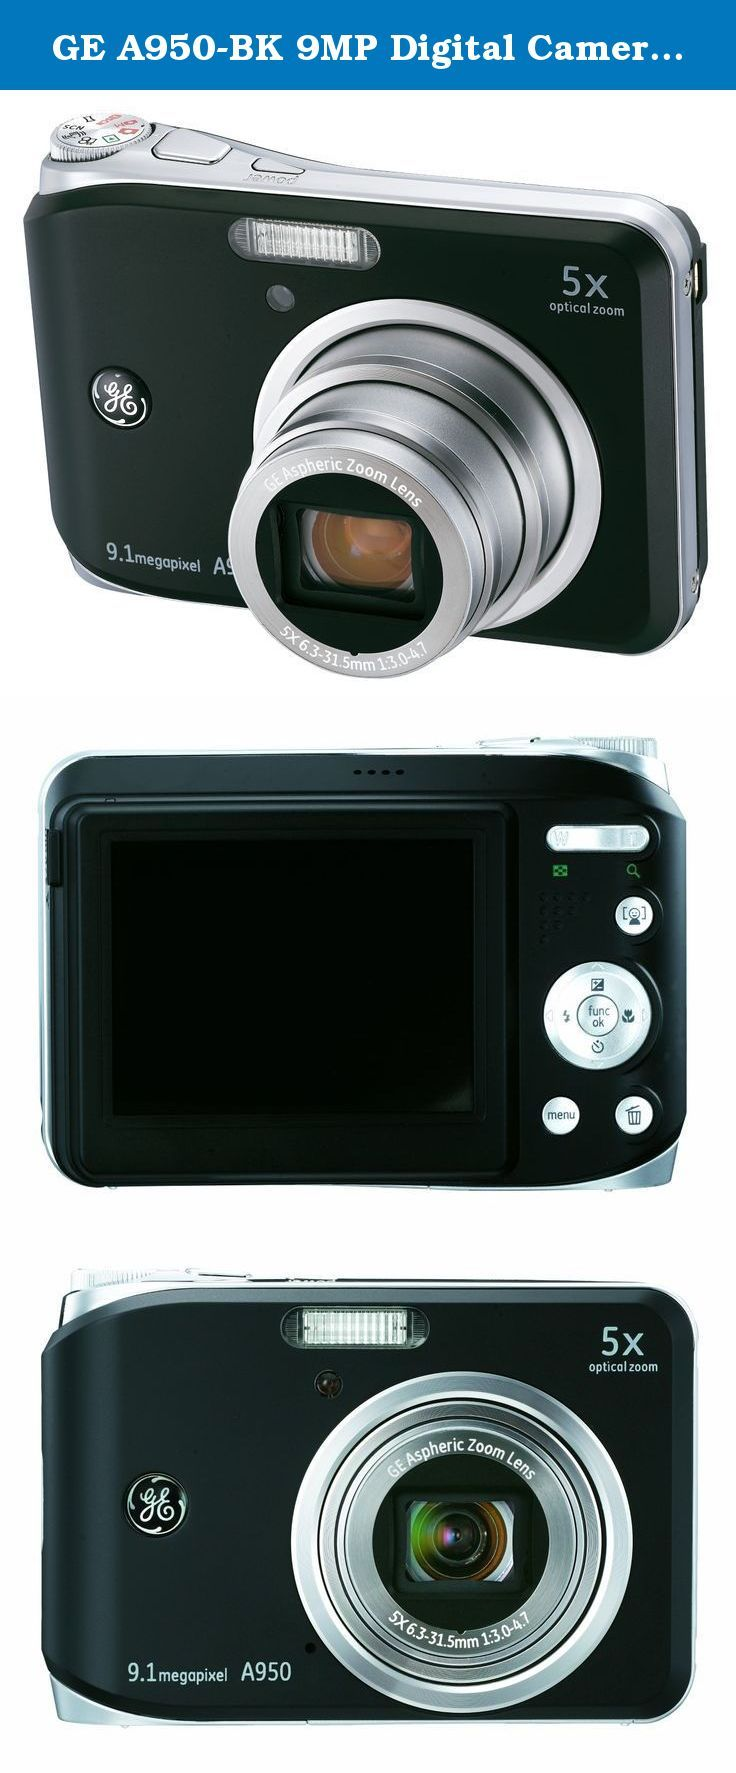 ge a950 bk 9mp digital camera with 5x optical zoom and 2 5 inch lcd rh pinterest com www Qmobile A950 A950 Glove